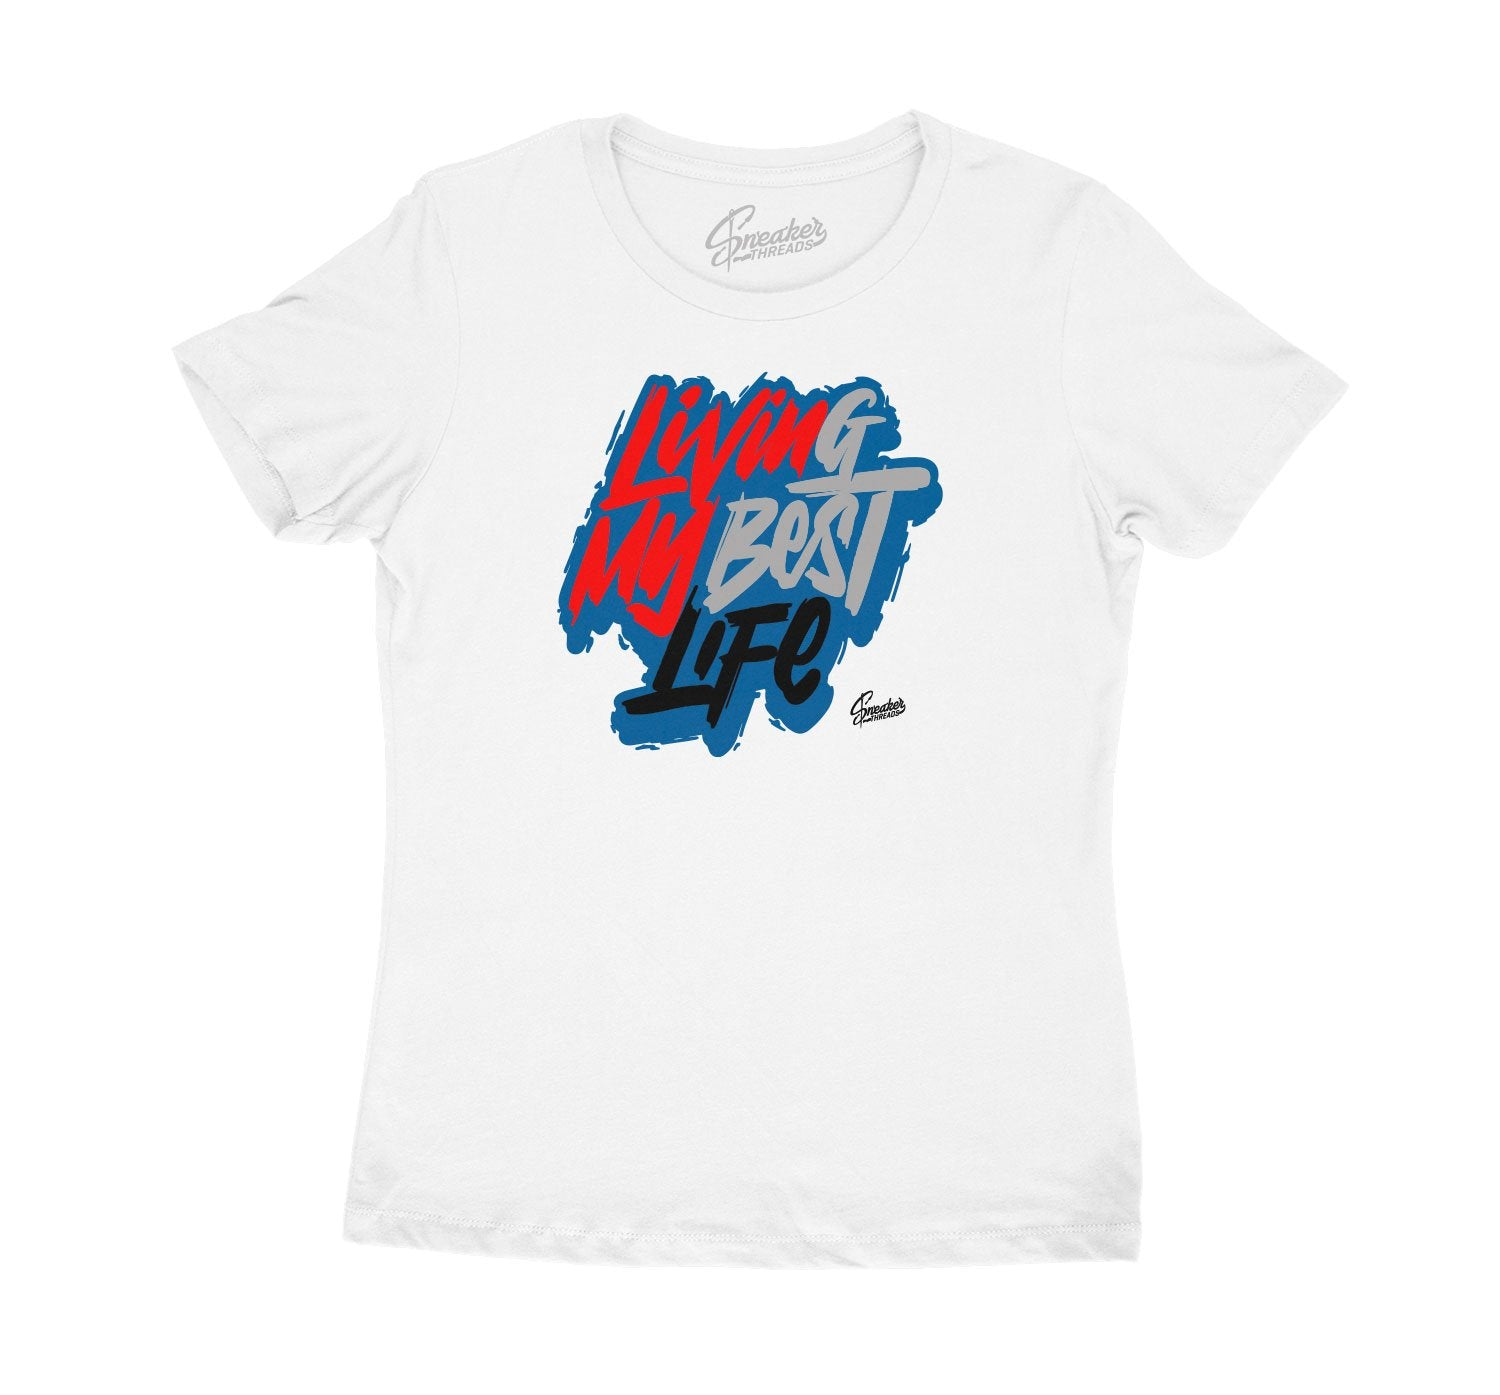 Womens tee collection designed to match the Jordan 4 what the 4s